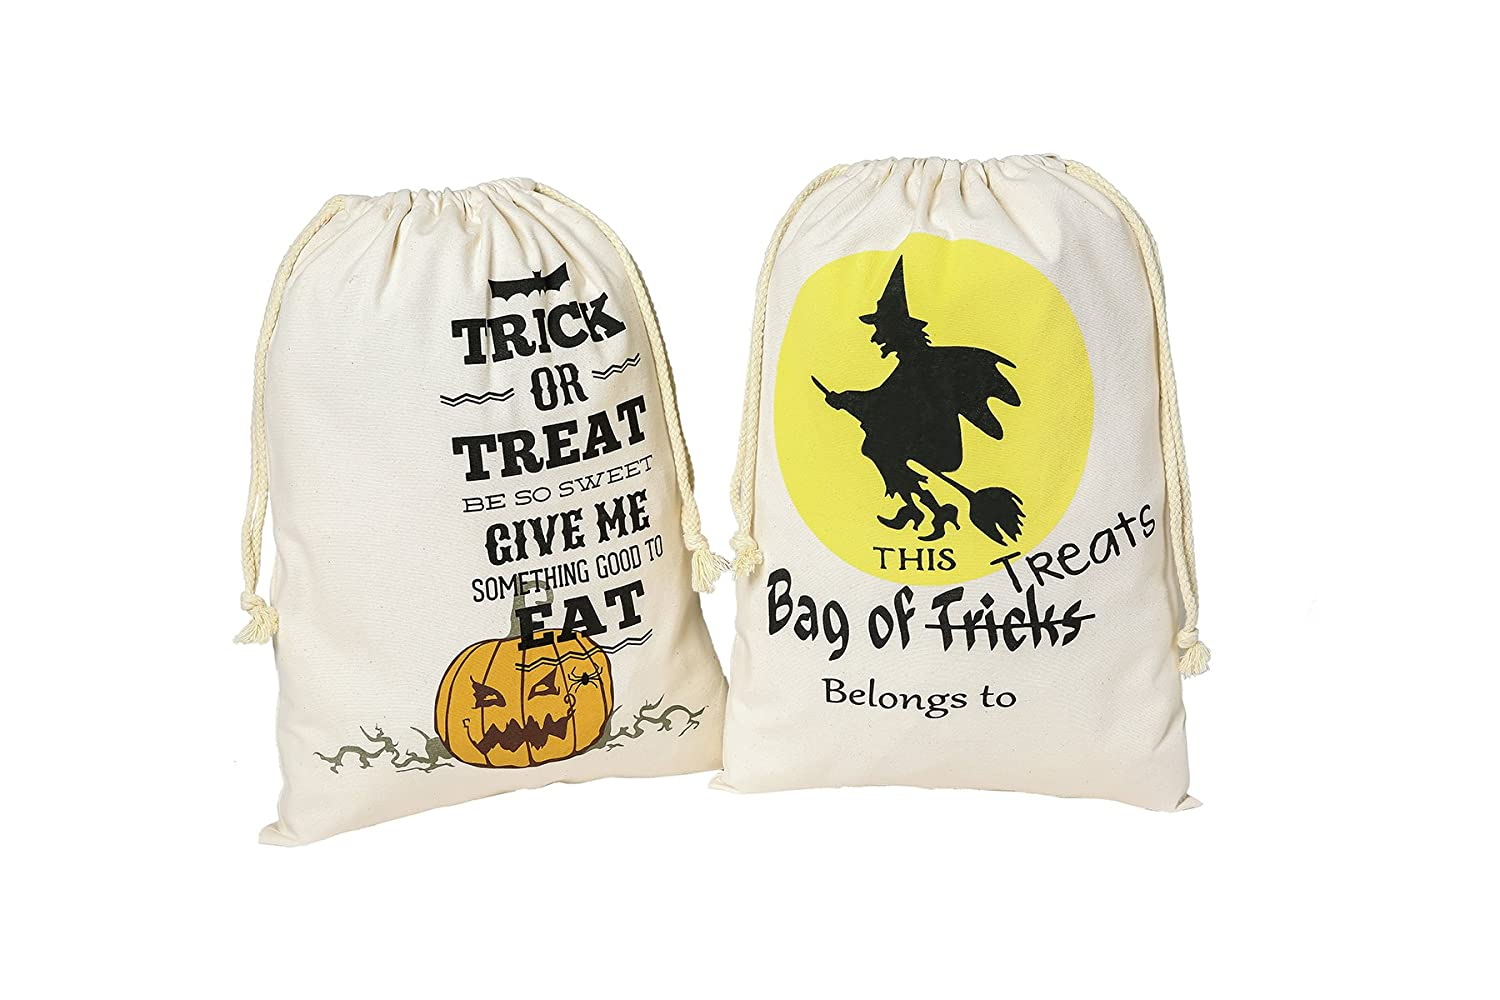 PJS-MAX Halloween Candy Bags Natural Cotton Material Fastened Thread Bear 44 Ibs with Drawstring Pattern 1 and 2 by PJS-MAX B01IKDR1Z0 Pattern 1 and 2 Pattern 1 and 2